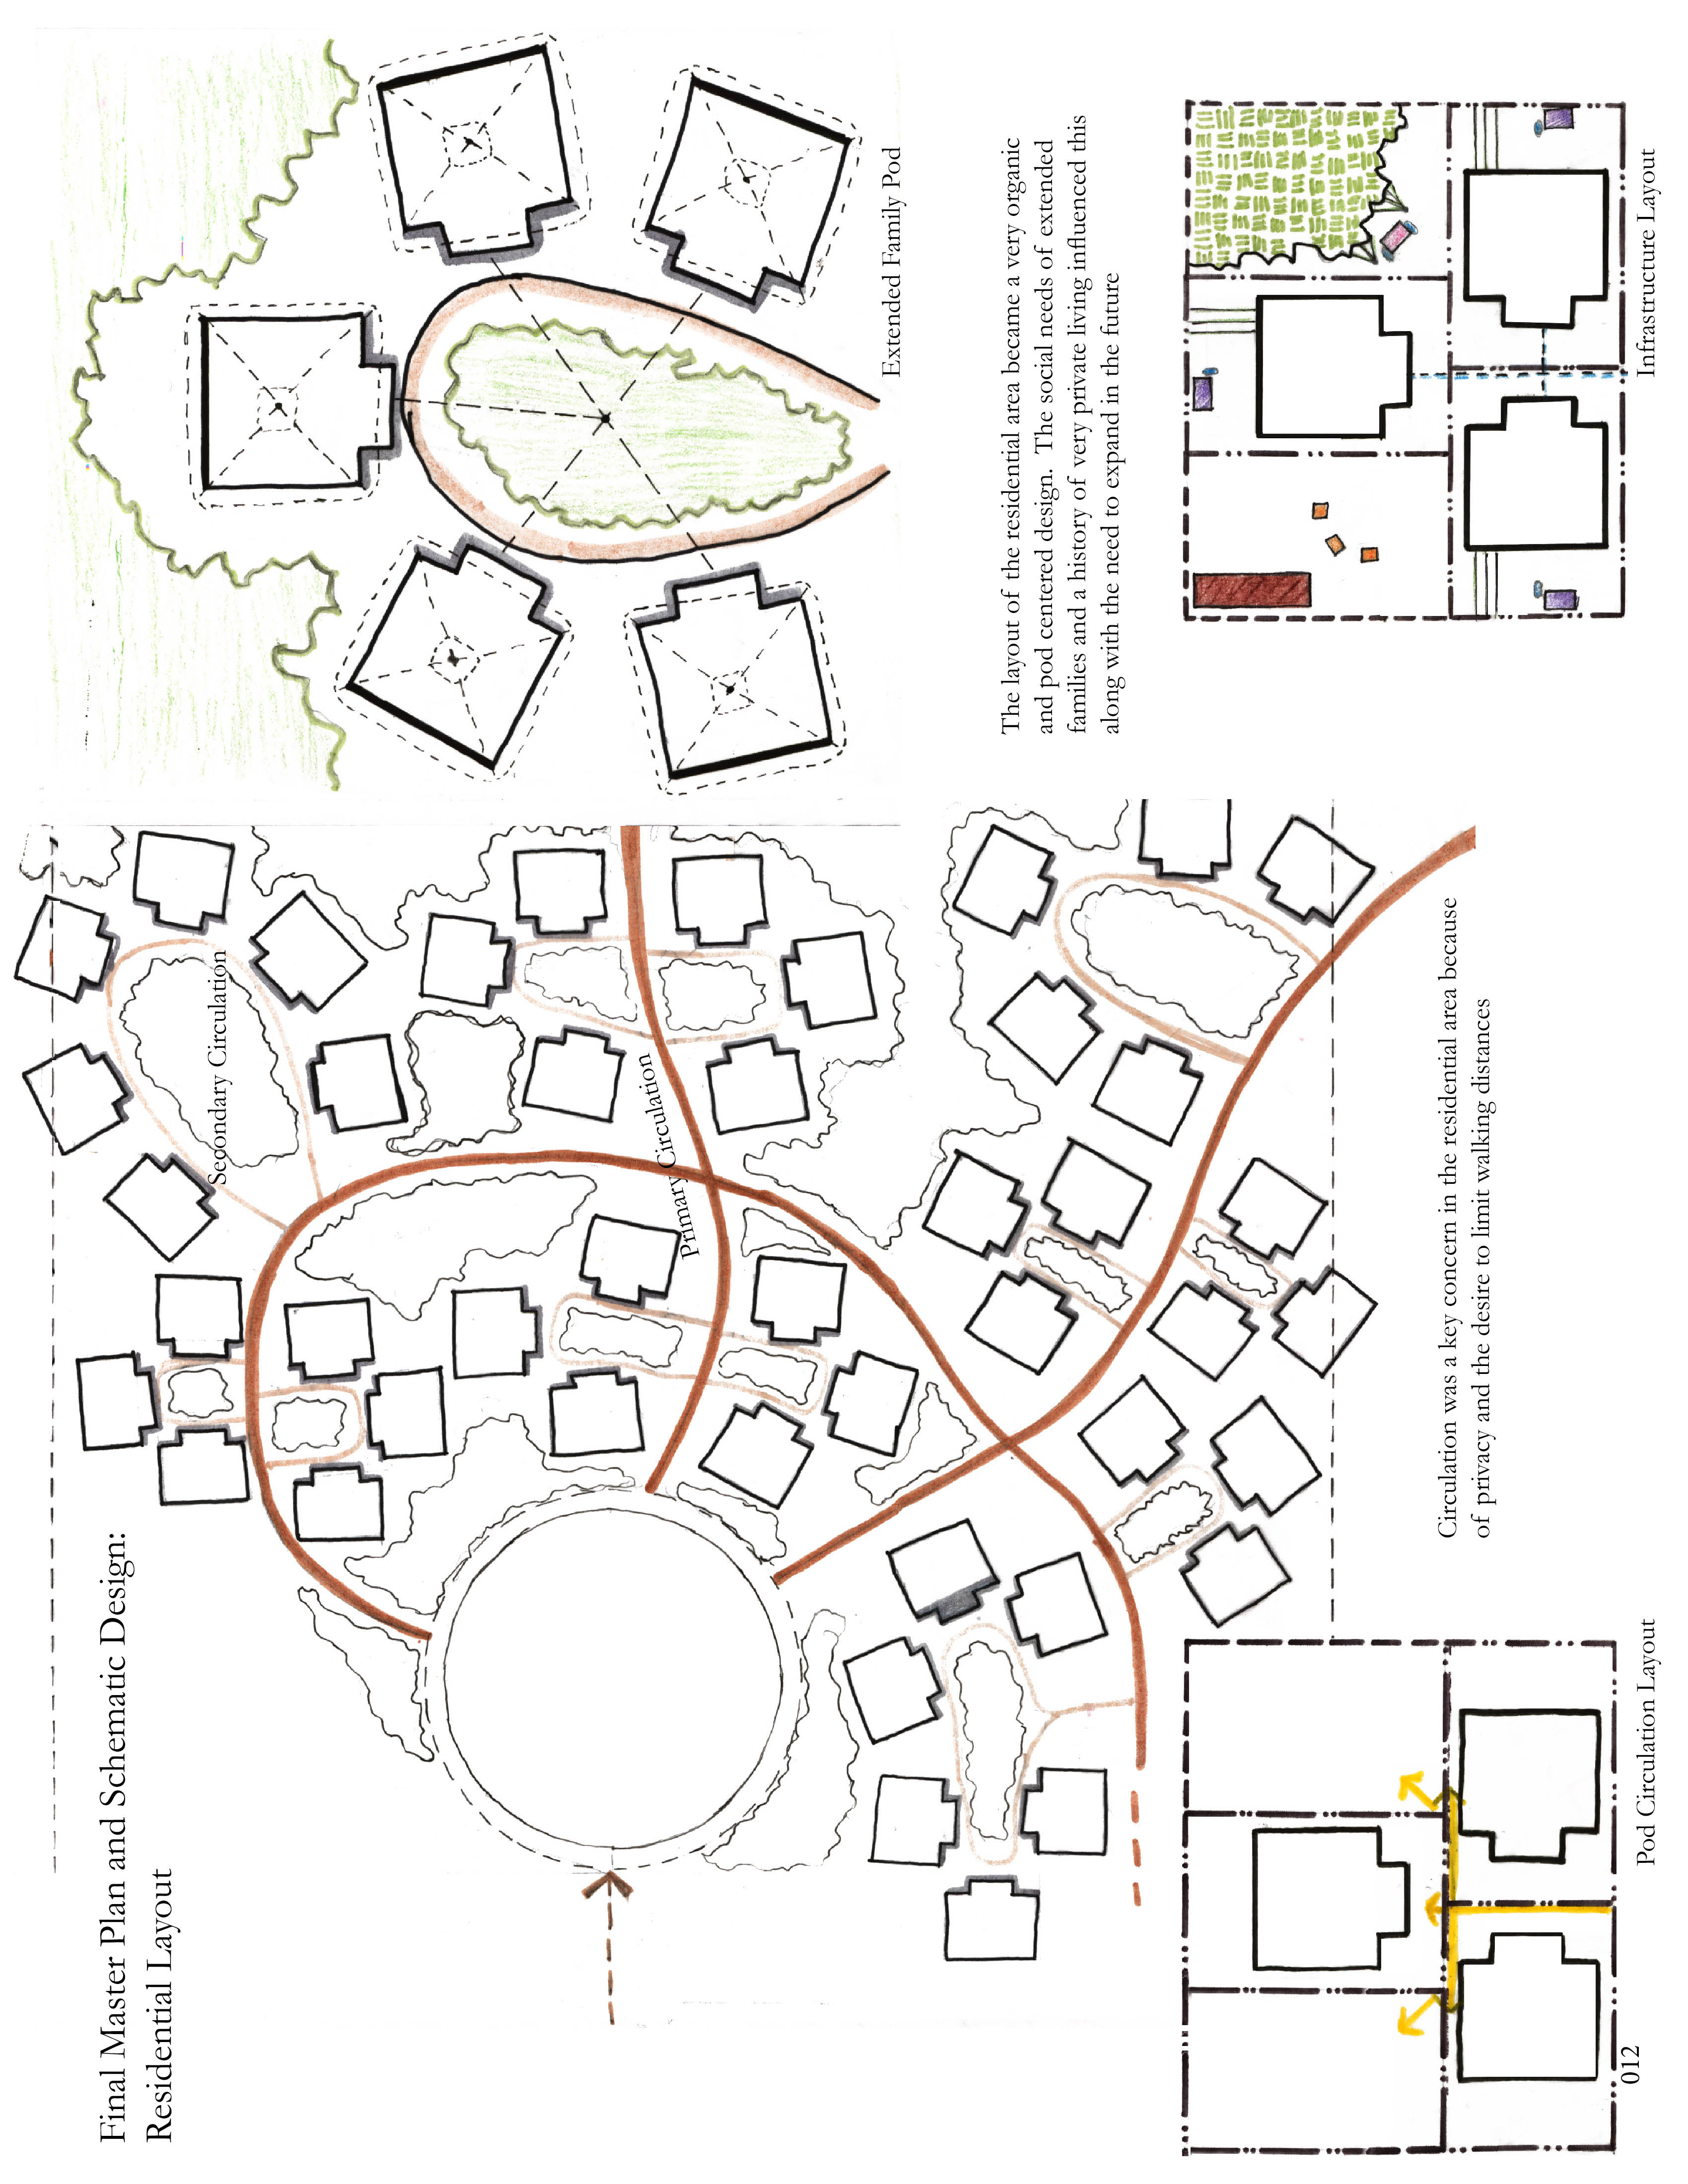 Schematic Layout Design Experience Of Wiring Diagram Theremin Get Free Image About Asla 2011 Student Awards Cultural Sustainability A Rainforest Rh Org Cosmetic Layouts Symbols